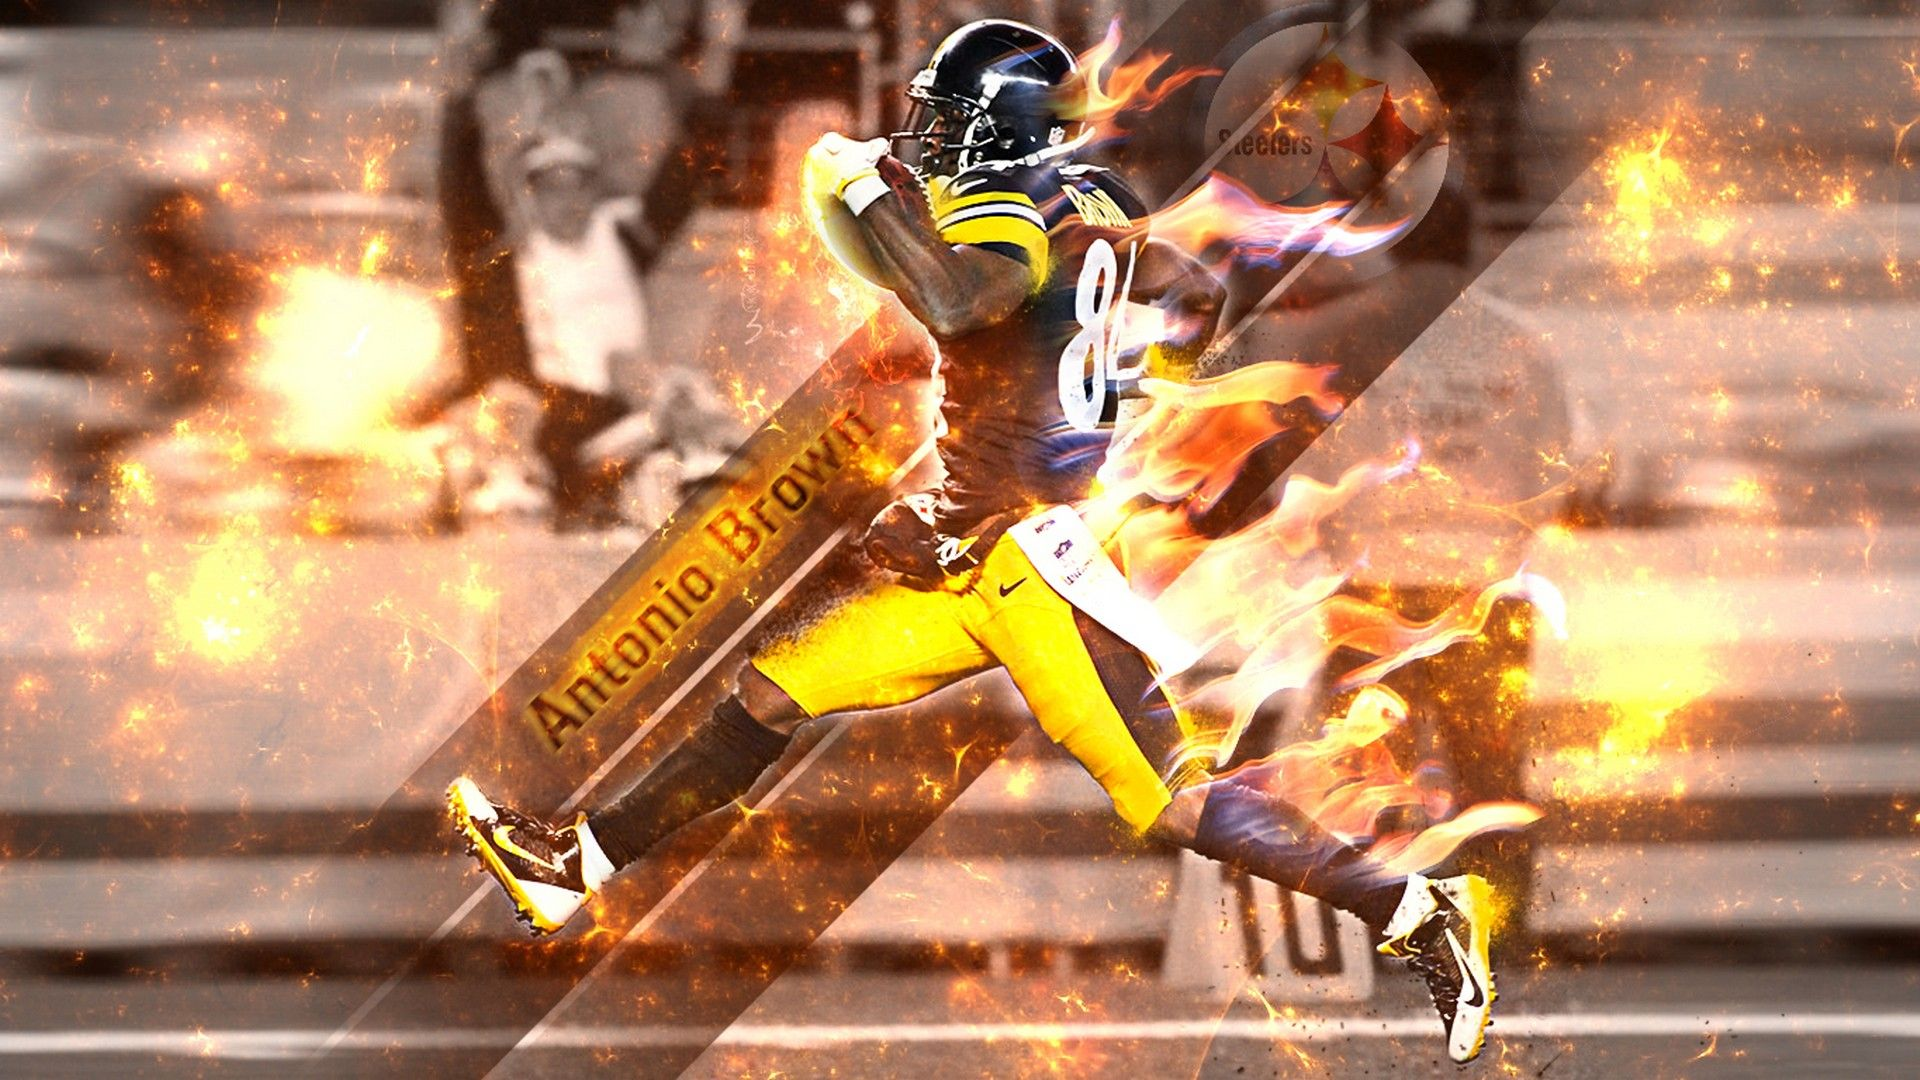 Hd Pitt Steelers Backgrounds 2021 Nfl Football Wallpapers Nfl Football Wallpaper Nfl Fantasy Football Steelers Country